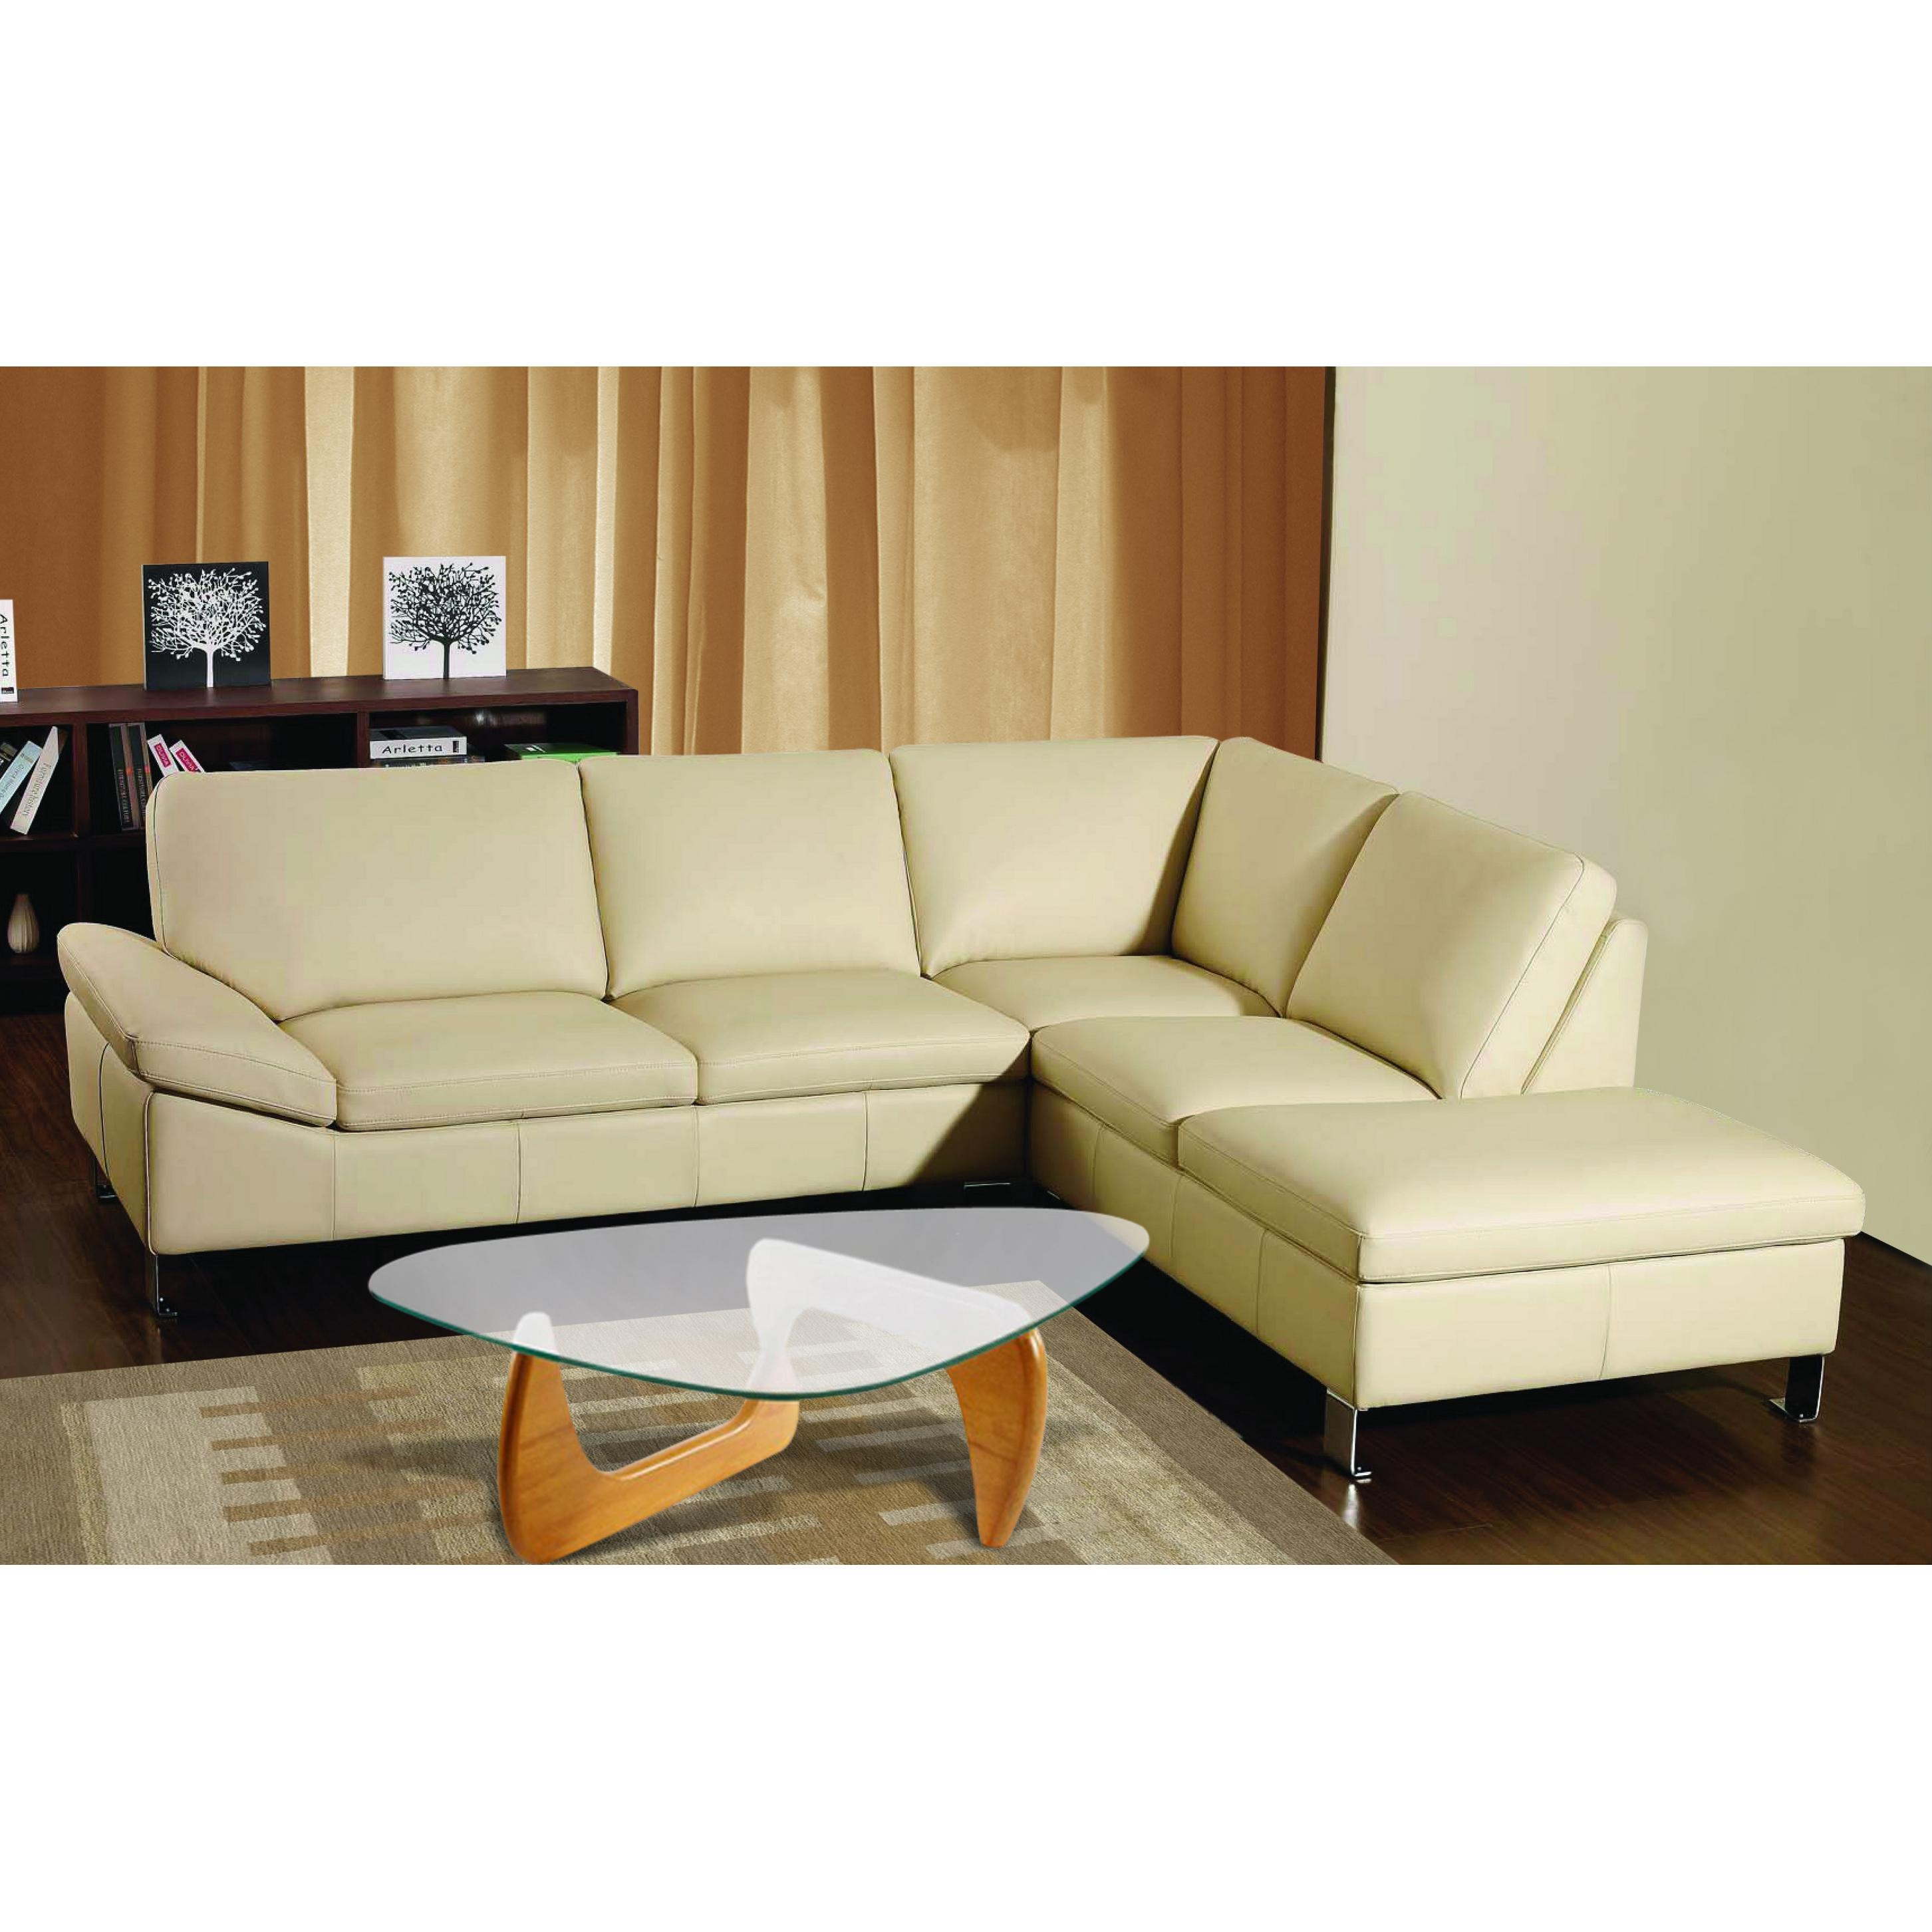 L Shaped Leather Sectional Sofa – Leather Sectional Sofa Throughout Leather L Shaped Sectional Sofas (View 11 of 20)